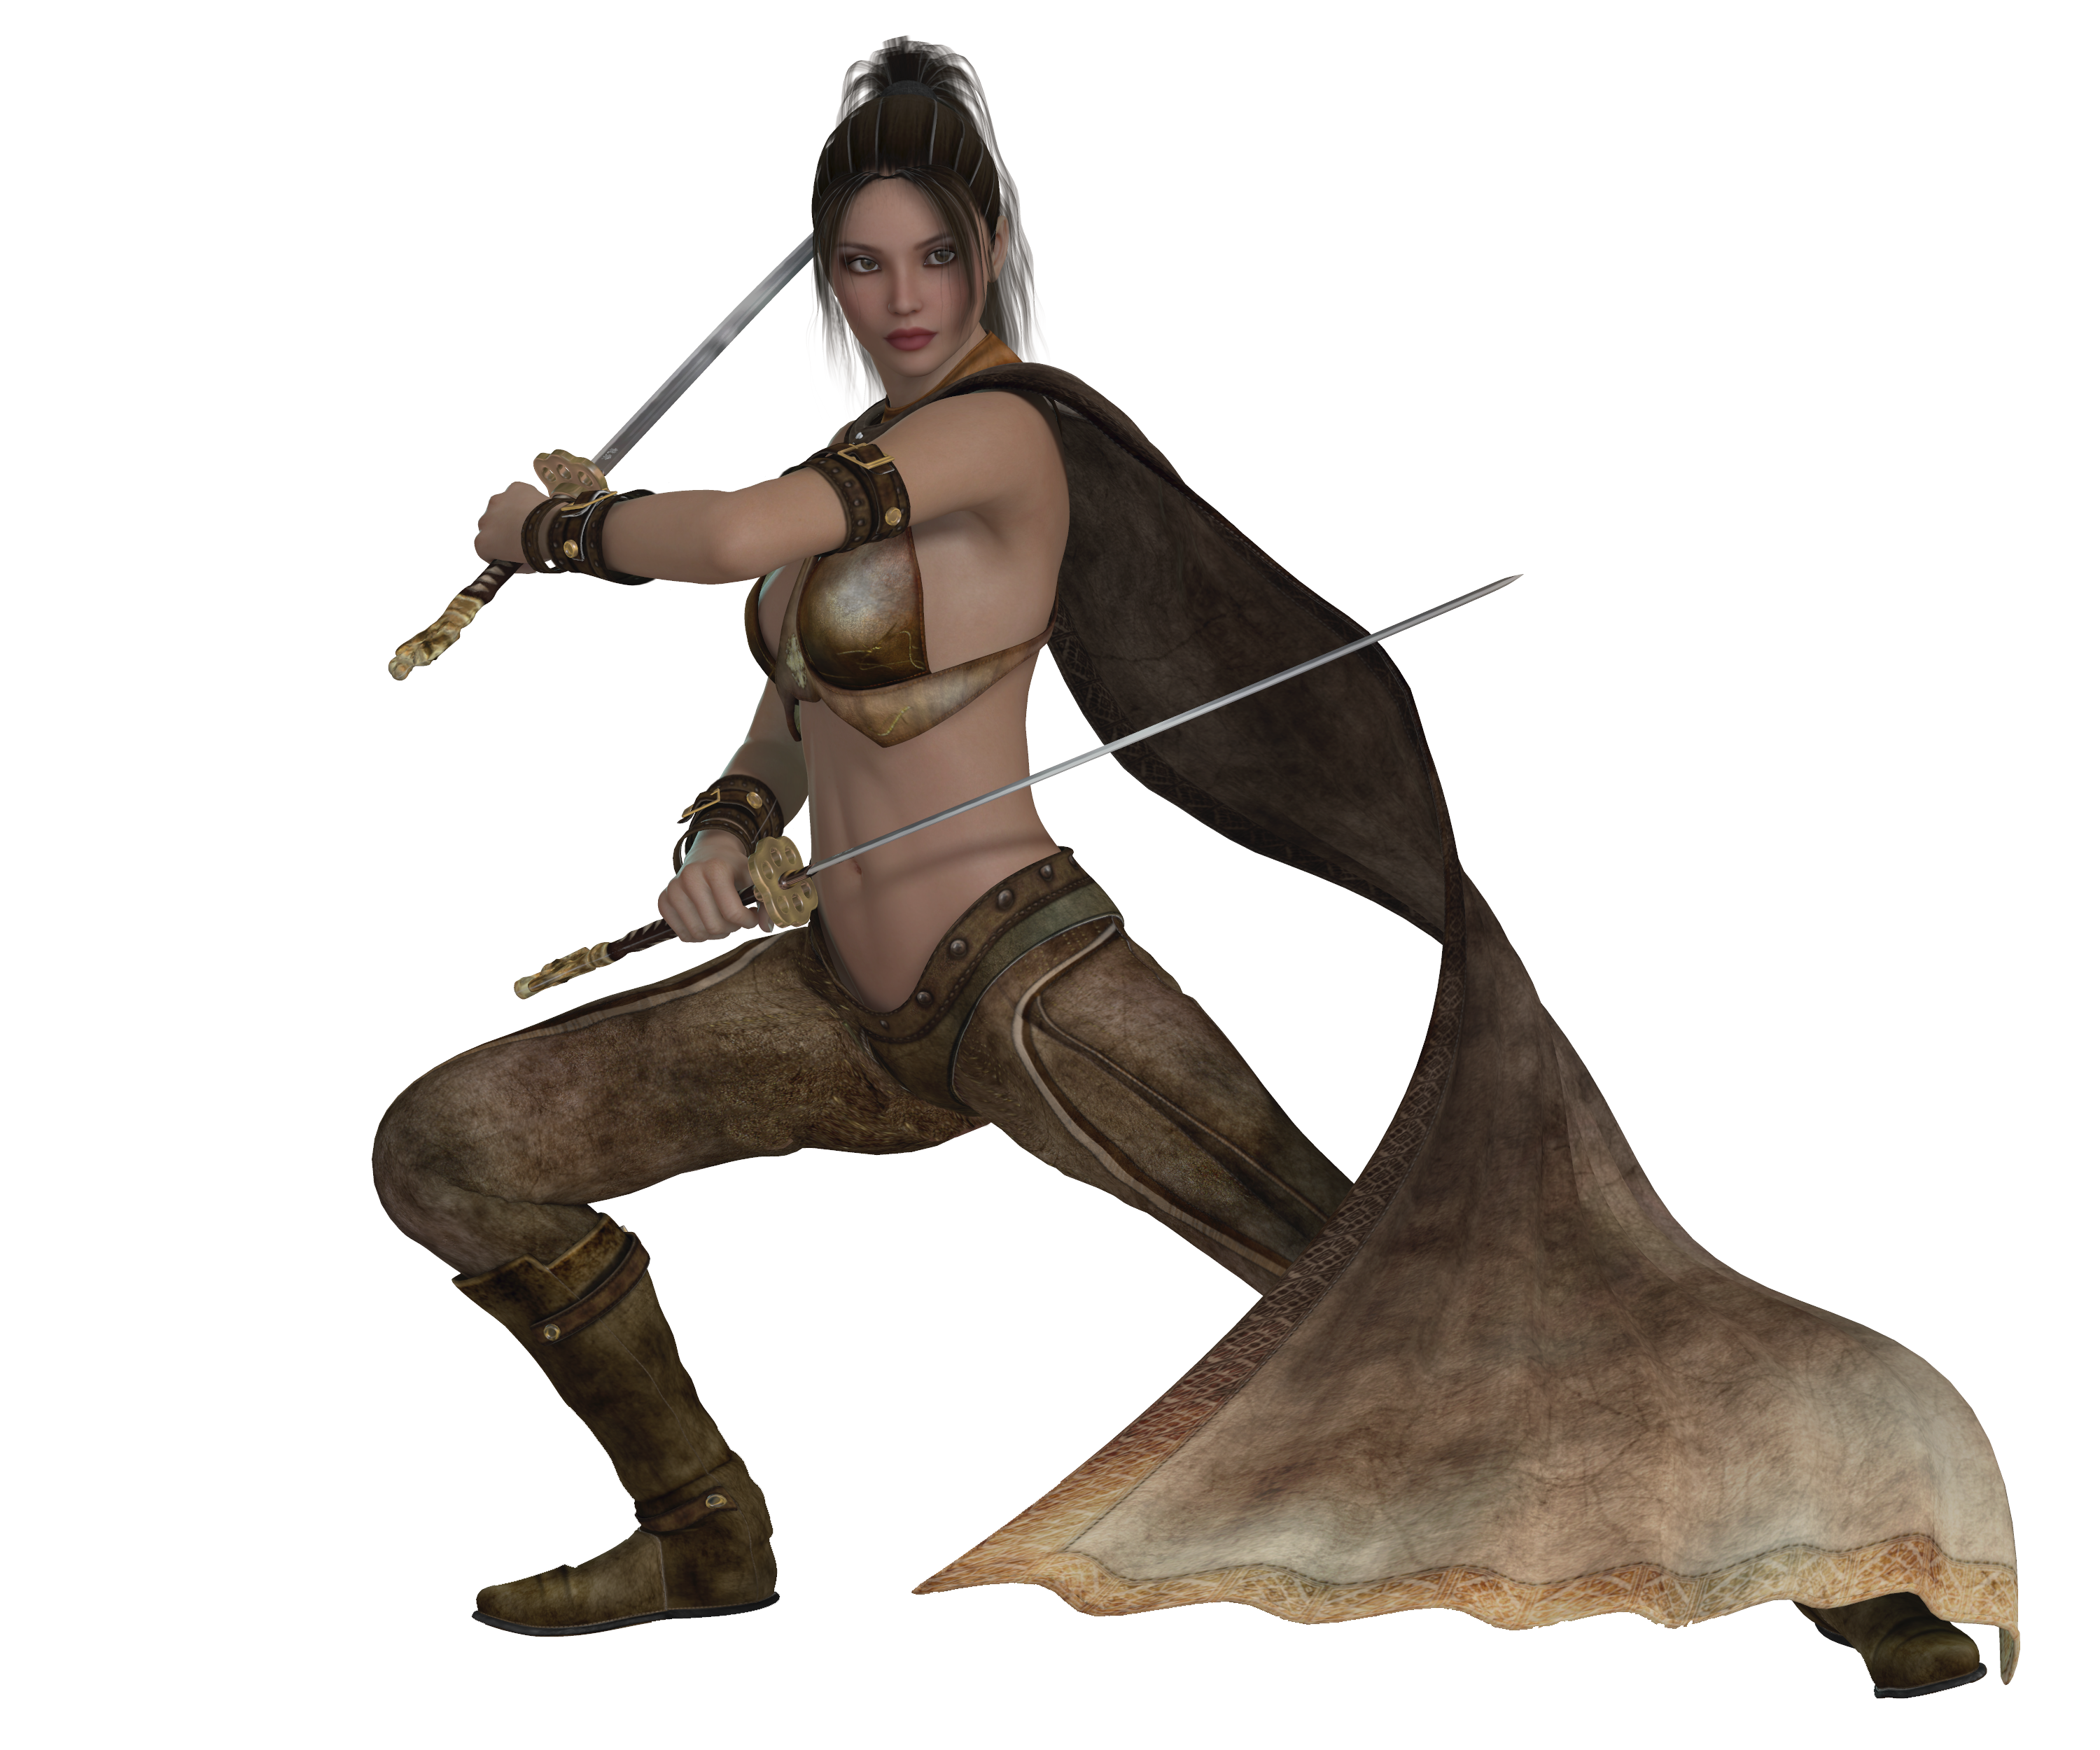 Warrior clipart female warrior. Woman dressed in a